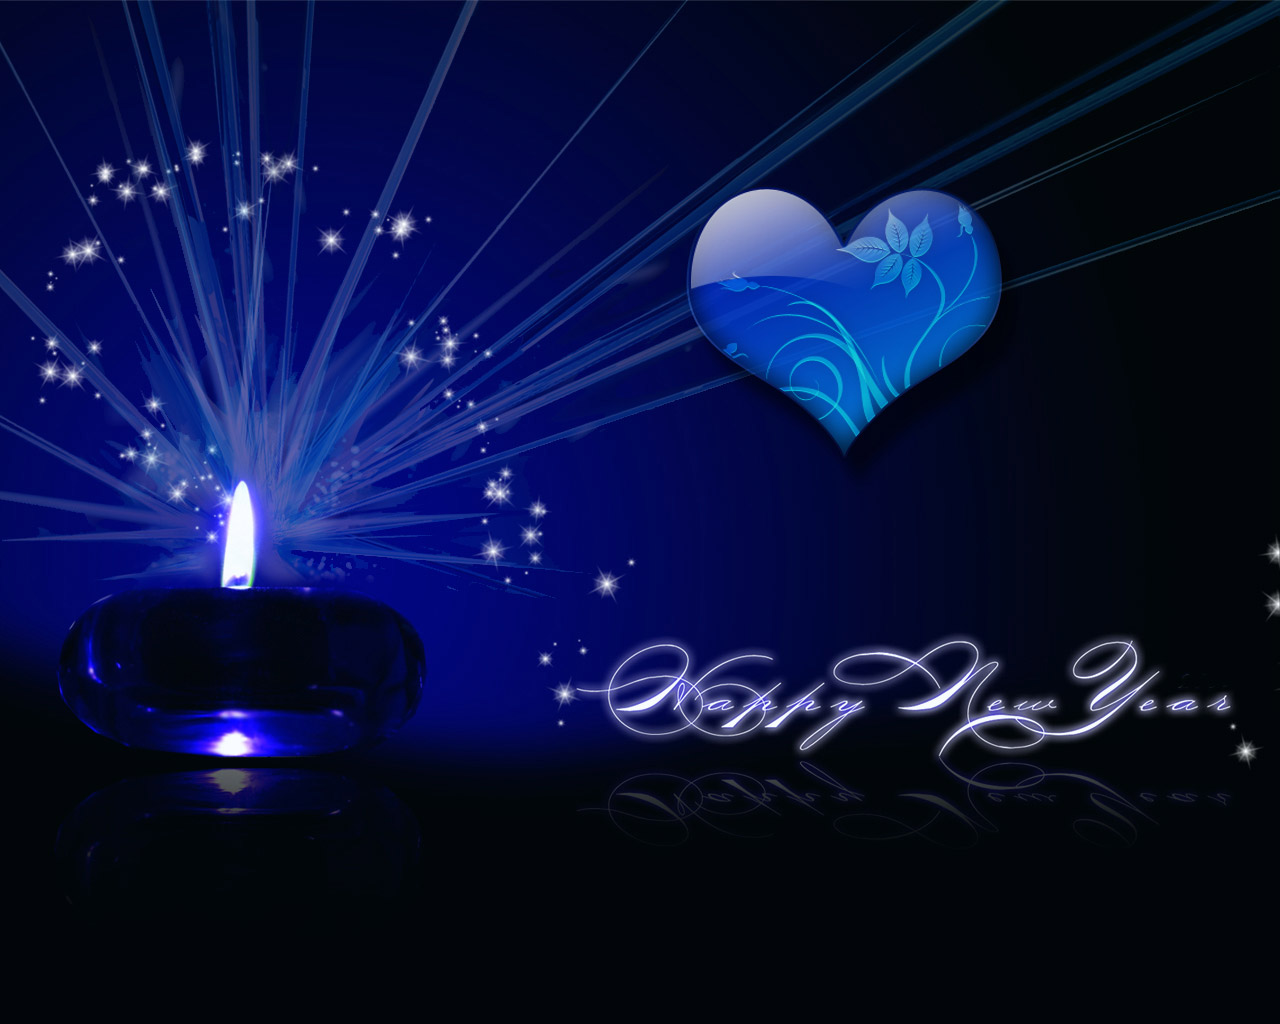 new year animated wallpaper 2017 - Grasscloth WallpaperAnimated New Year Wallpaper